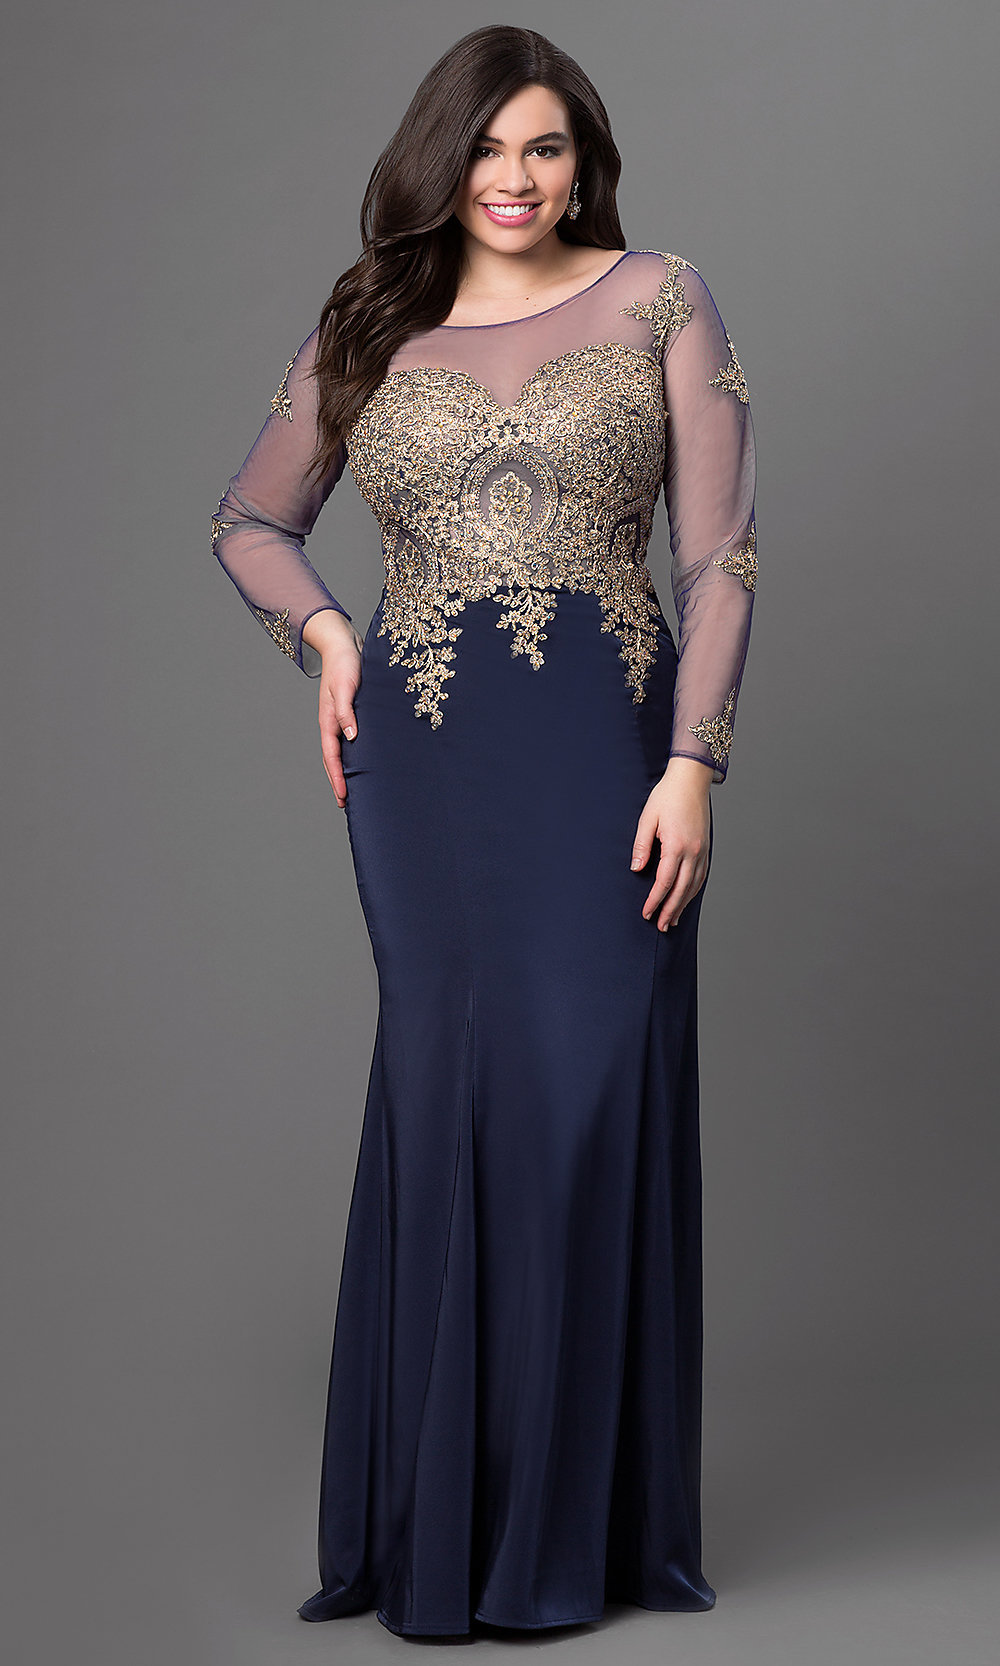 Illusion Dress with Lace Applique - PromGirl